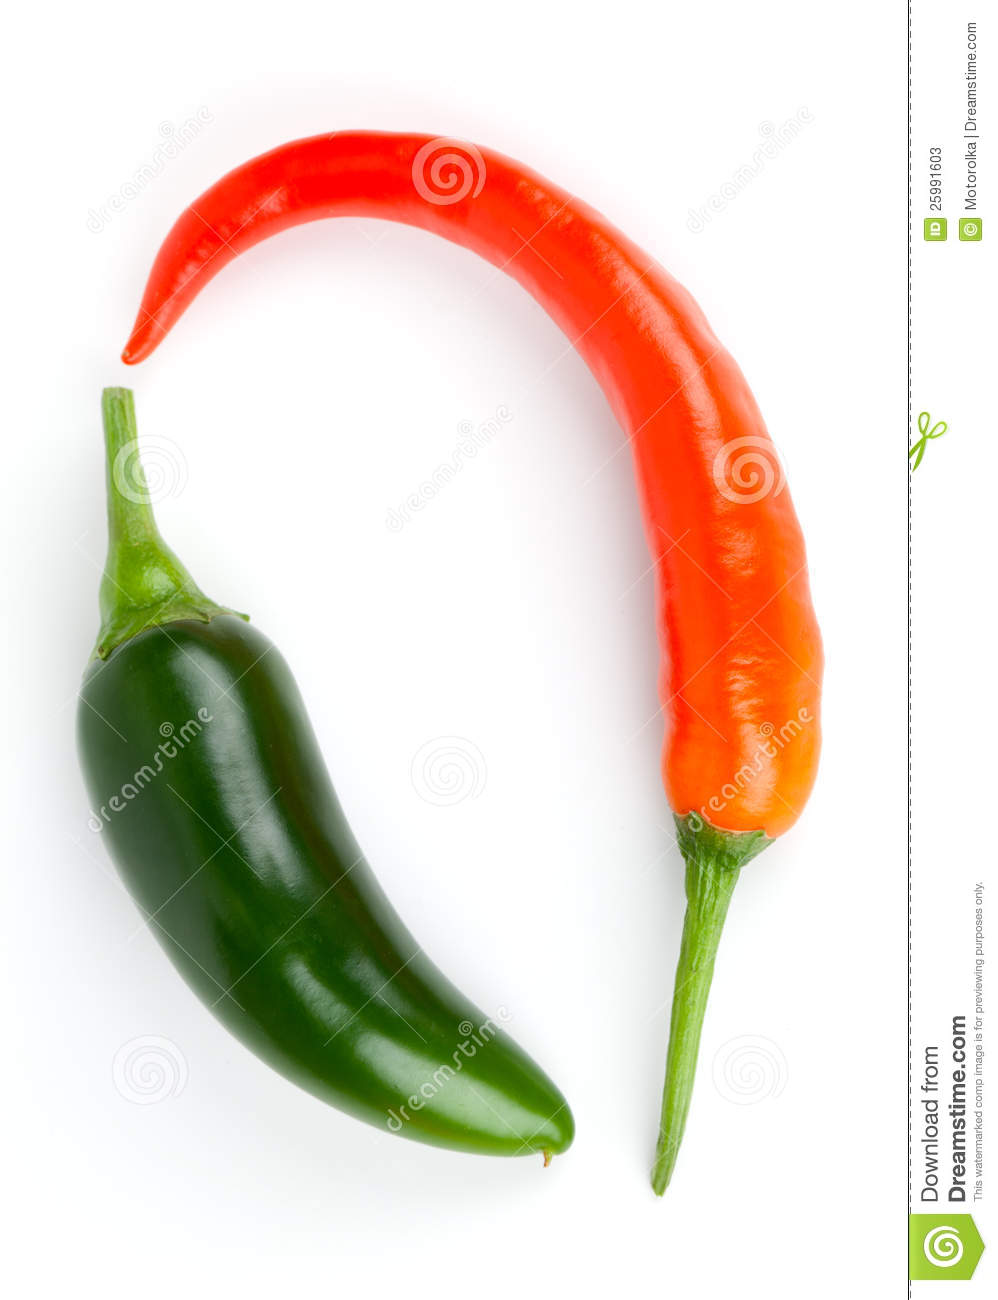 how to draw a jalapeno pepper